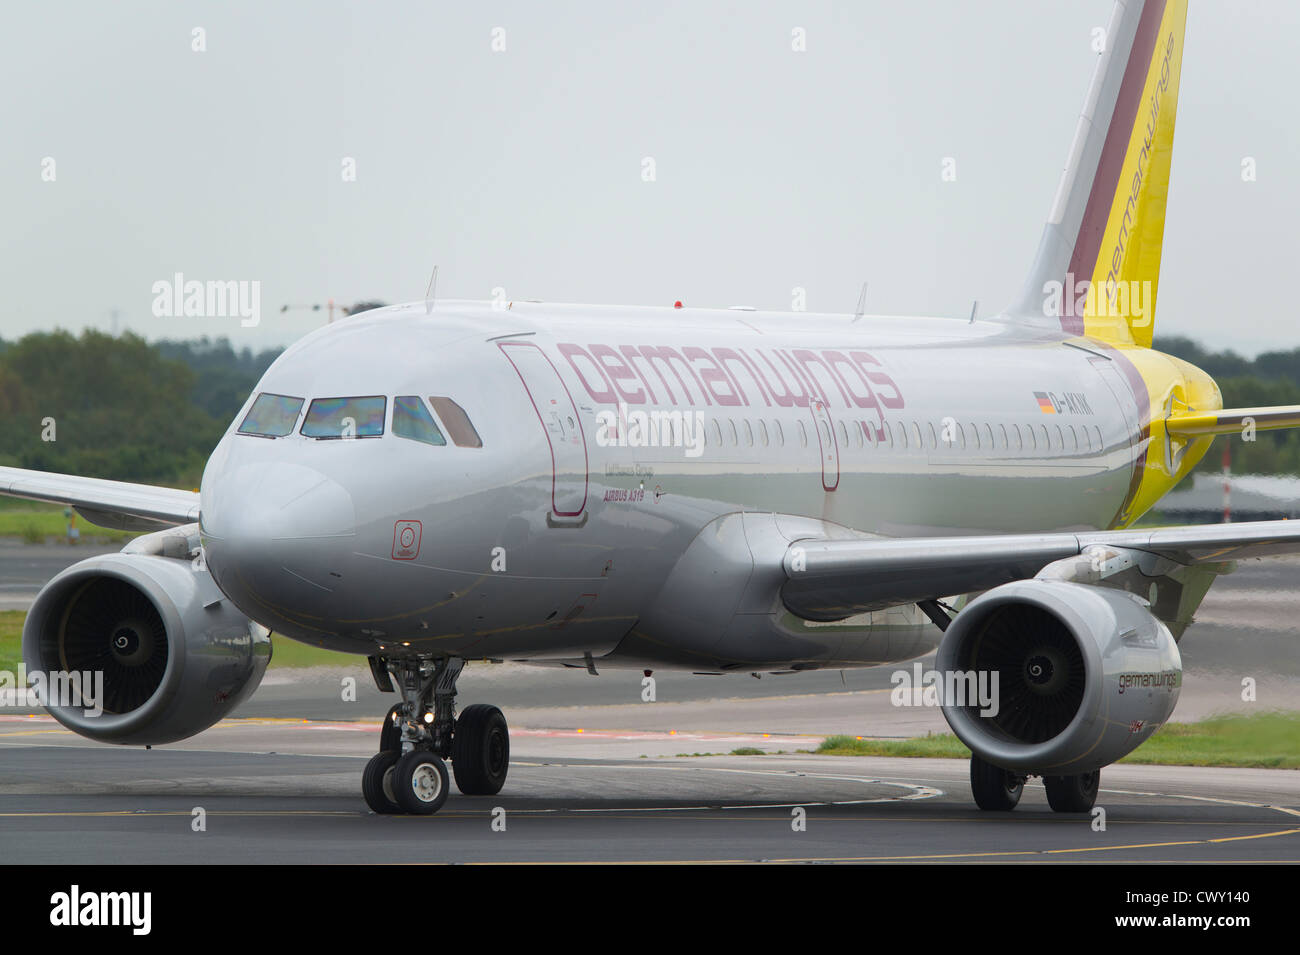 A Lufthansa Germanwings Airbus A319 taxiing on the runway of Manchester International Airport (Editorial use only) - Stock Image